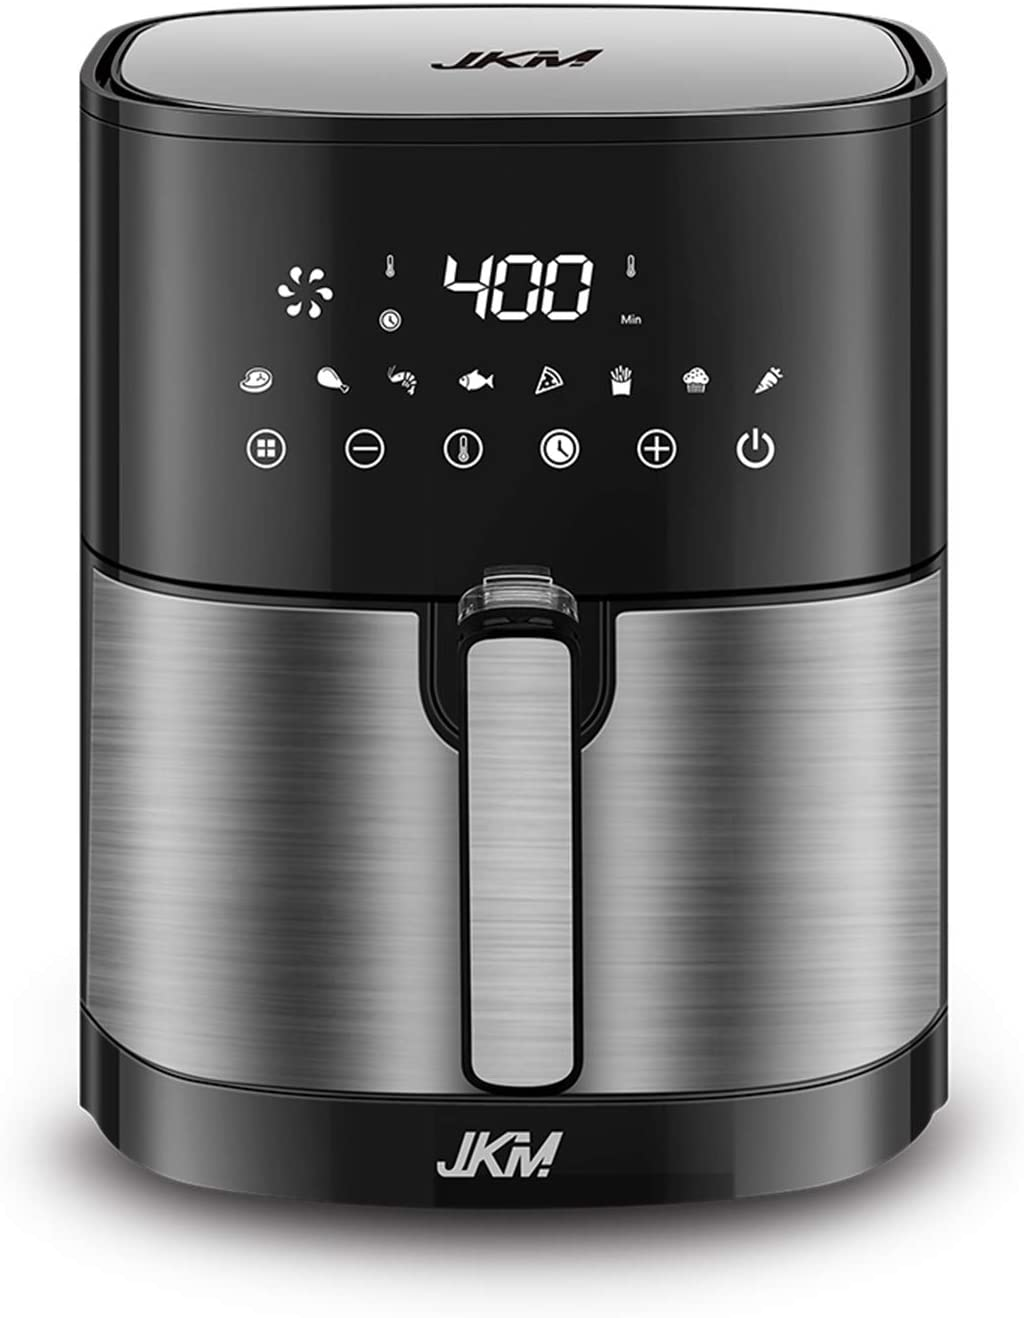 JKM XL 5.3 Quart Air Fryer Oven Stainless Steel , 8 Cooking Preset, Multifunction LED Digital Display,15 E-recipes, No Oily Smoke Frying Cooking, Auto Shut Off, 1700W